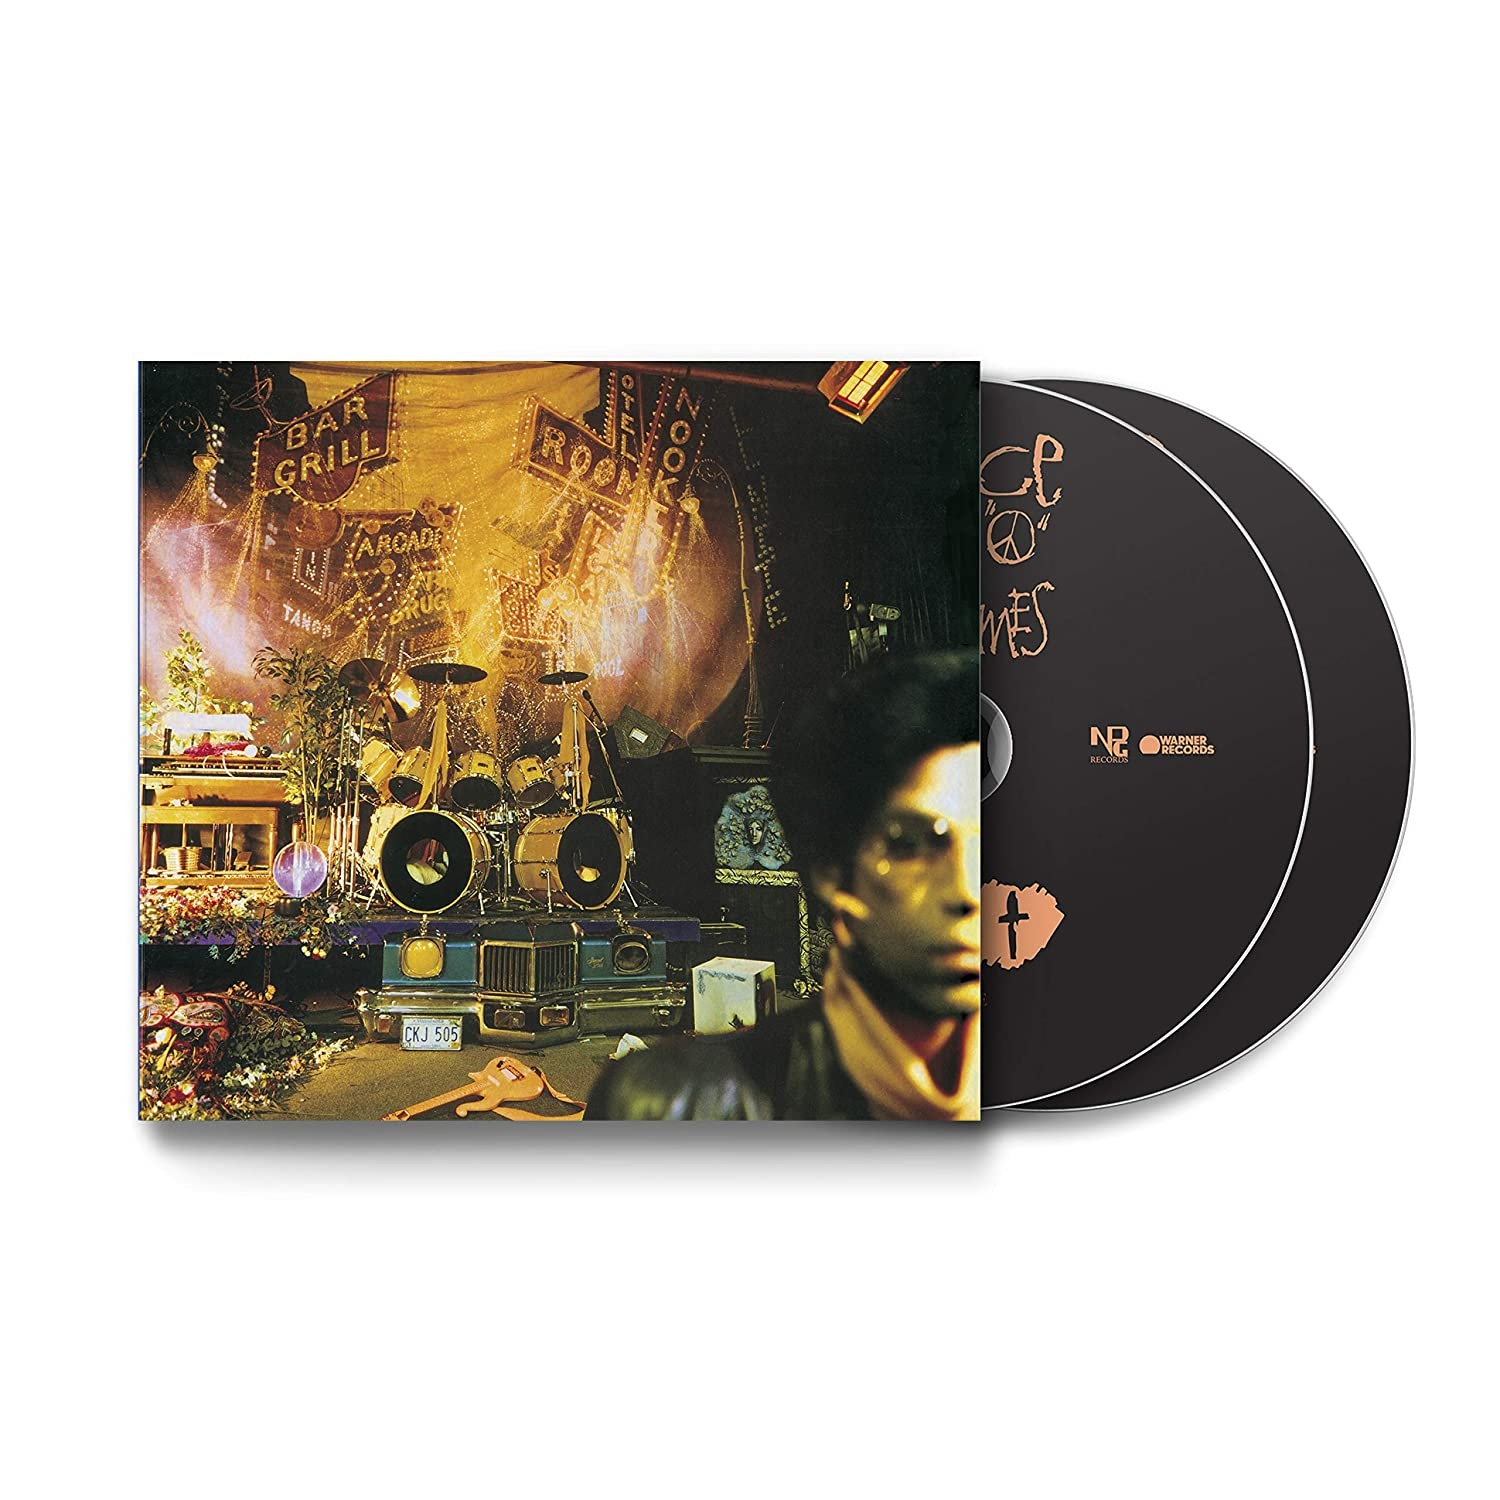 Sign O' the Times (2020 Reissue) - Prince - Musik - WARNER RECORDS - 0603497846535 - 25/9-2020